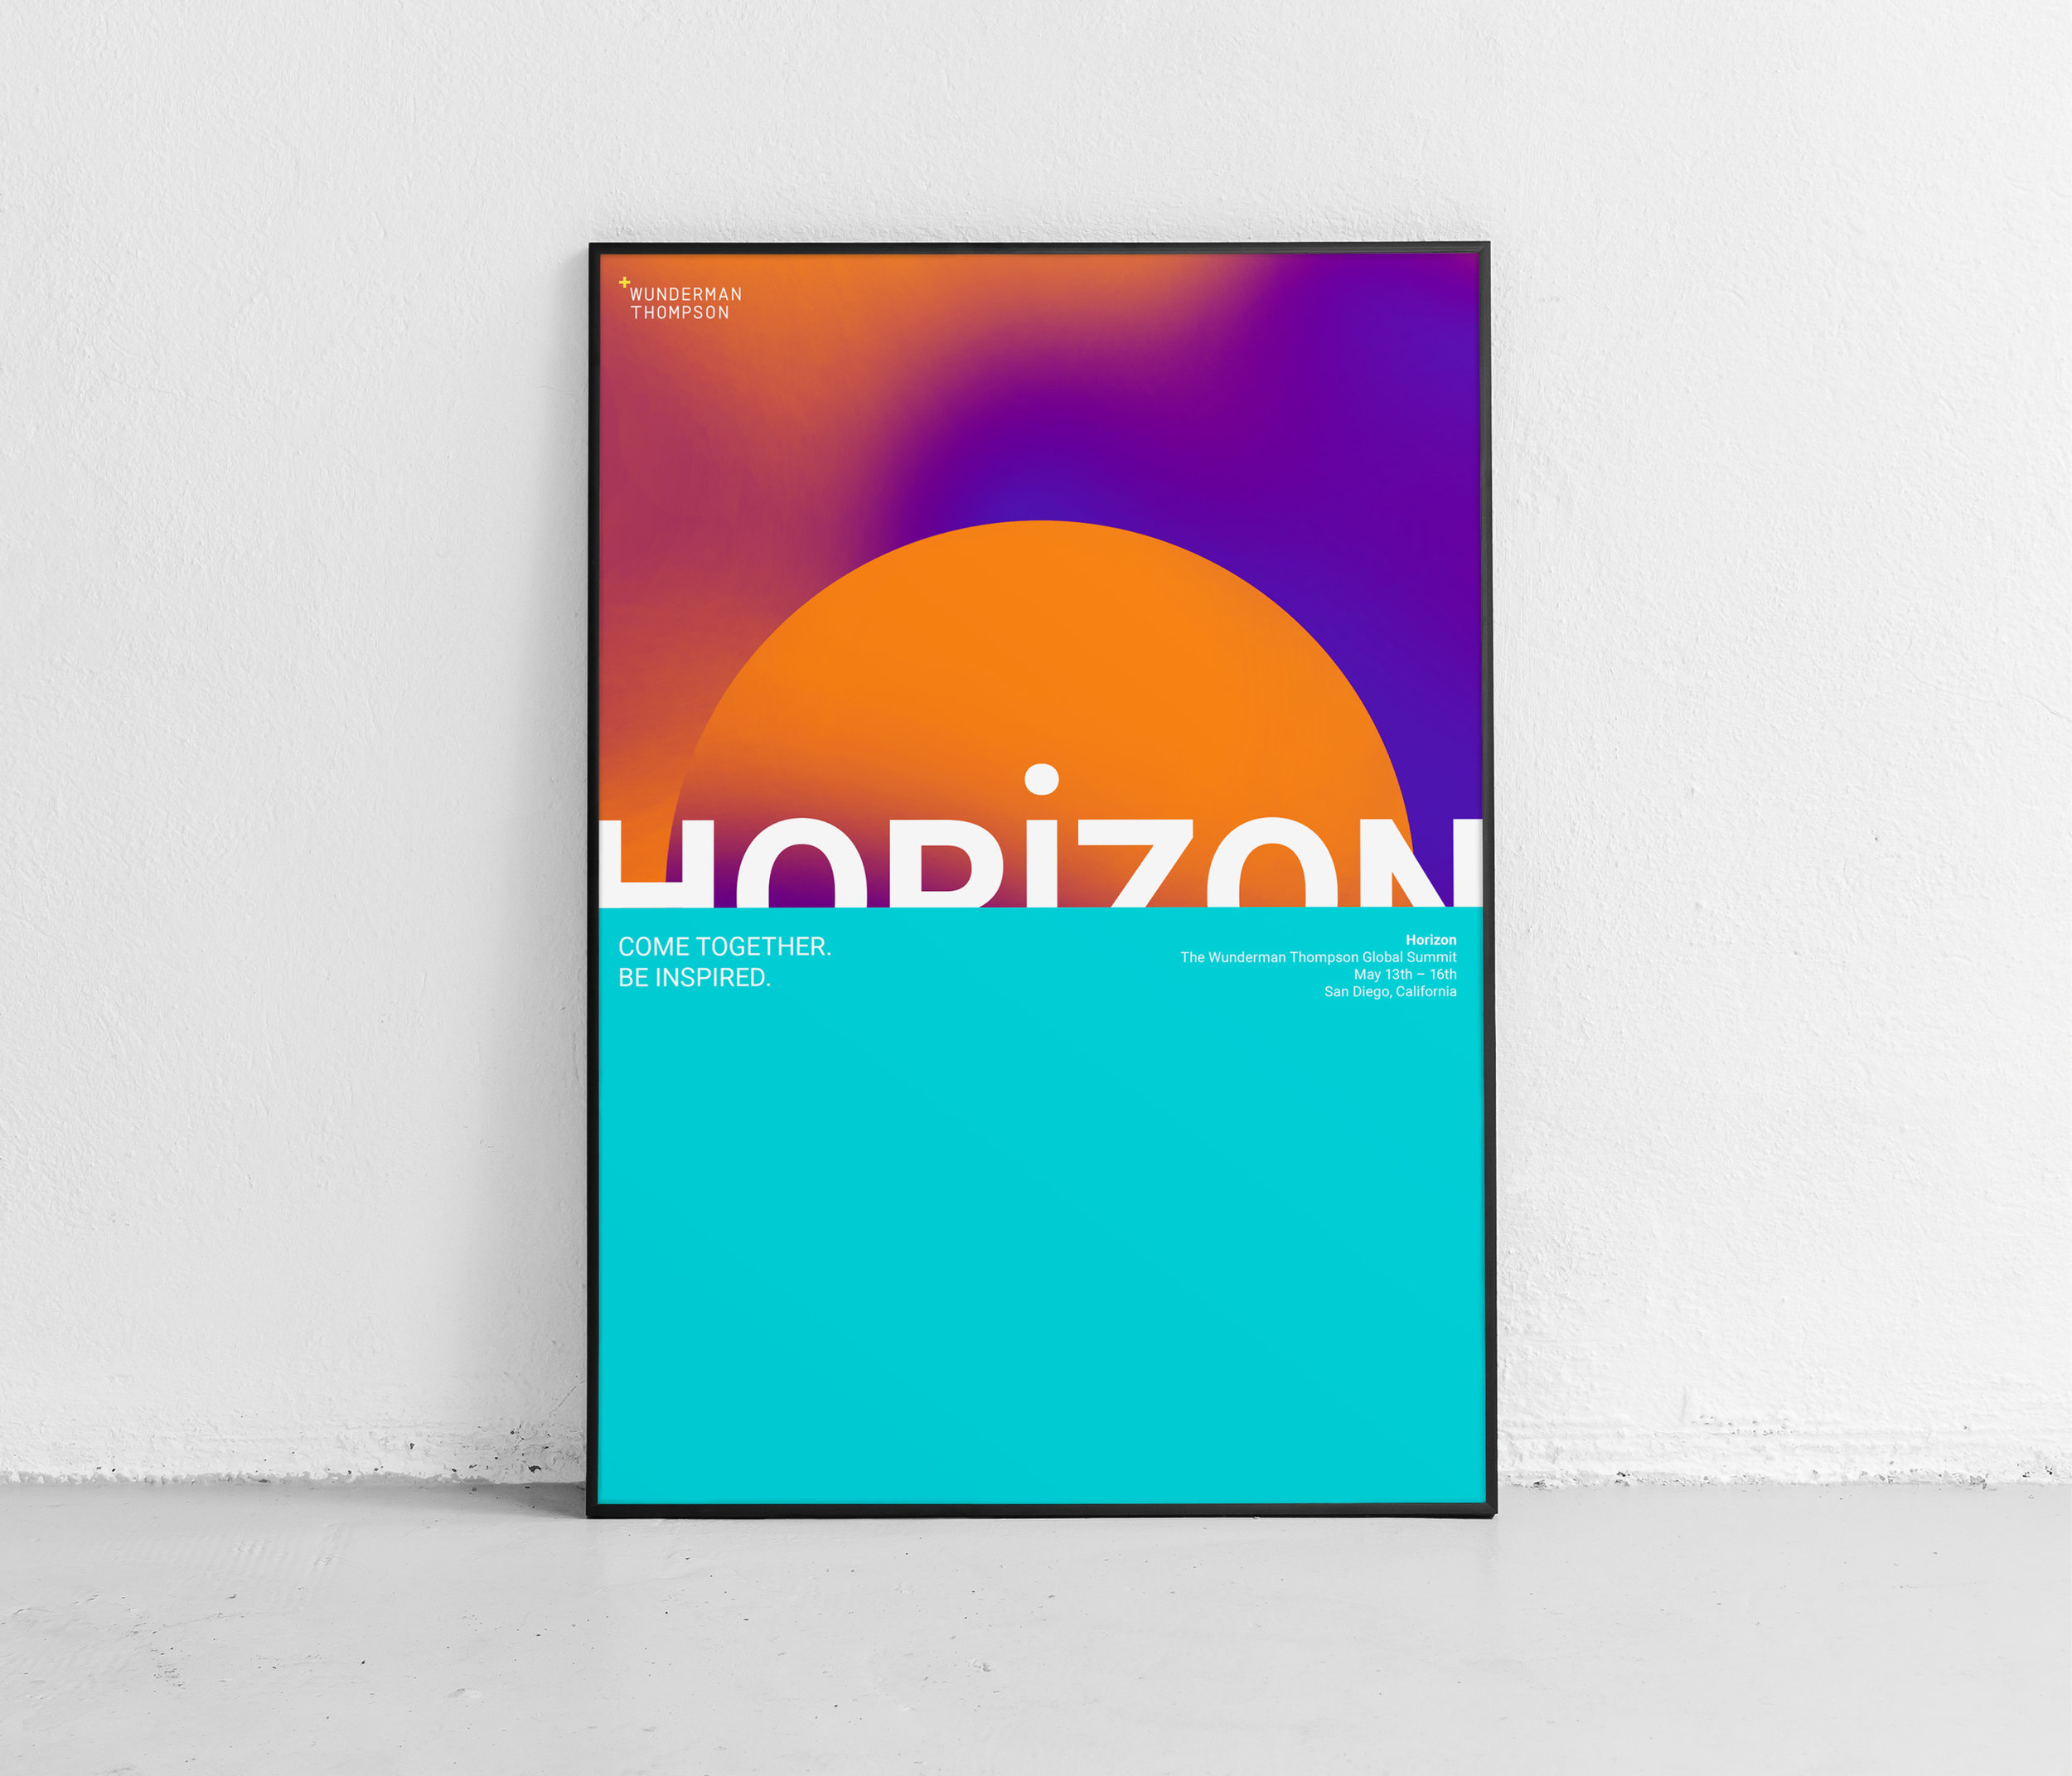 HORiZON — Wunderman Thompson Global Summit